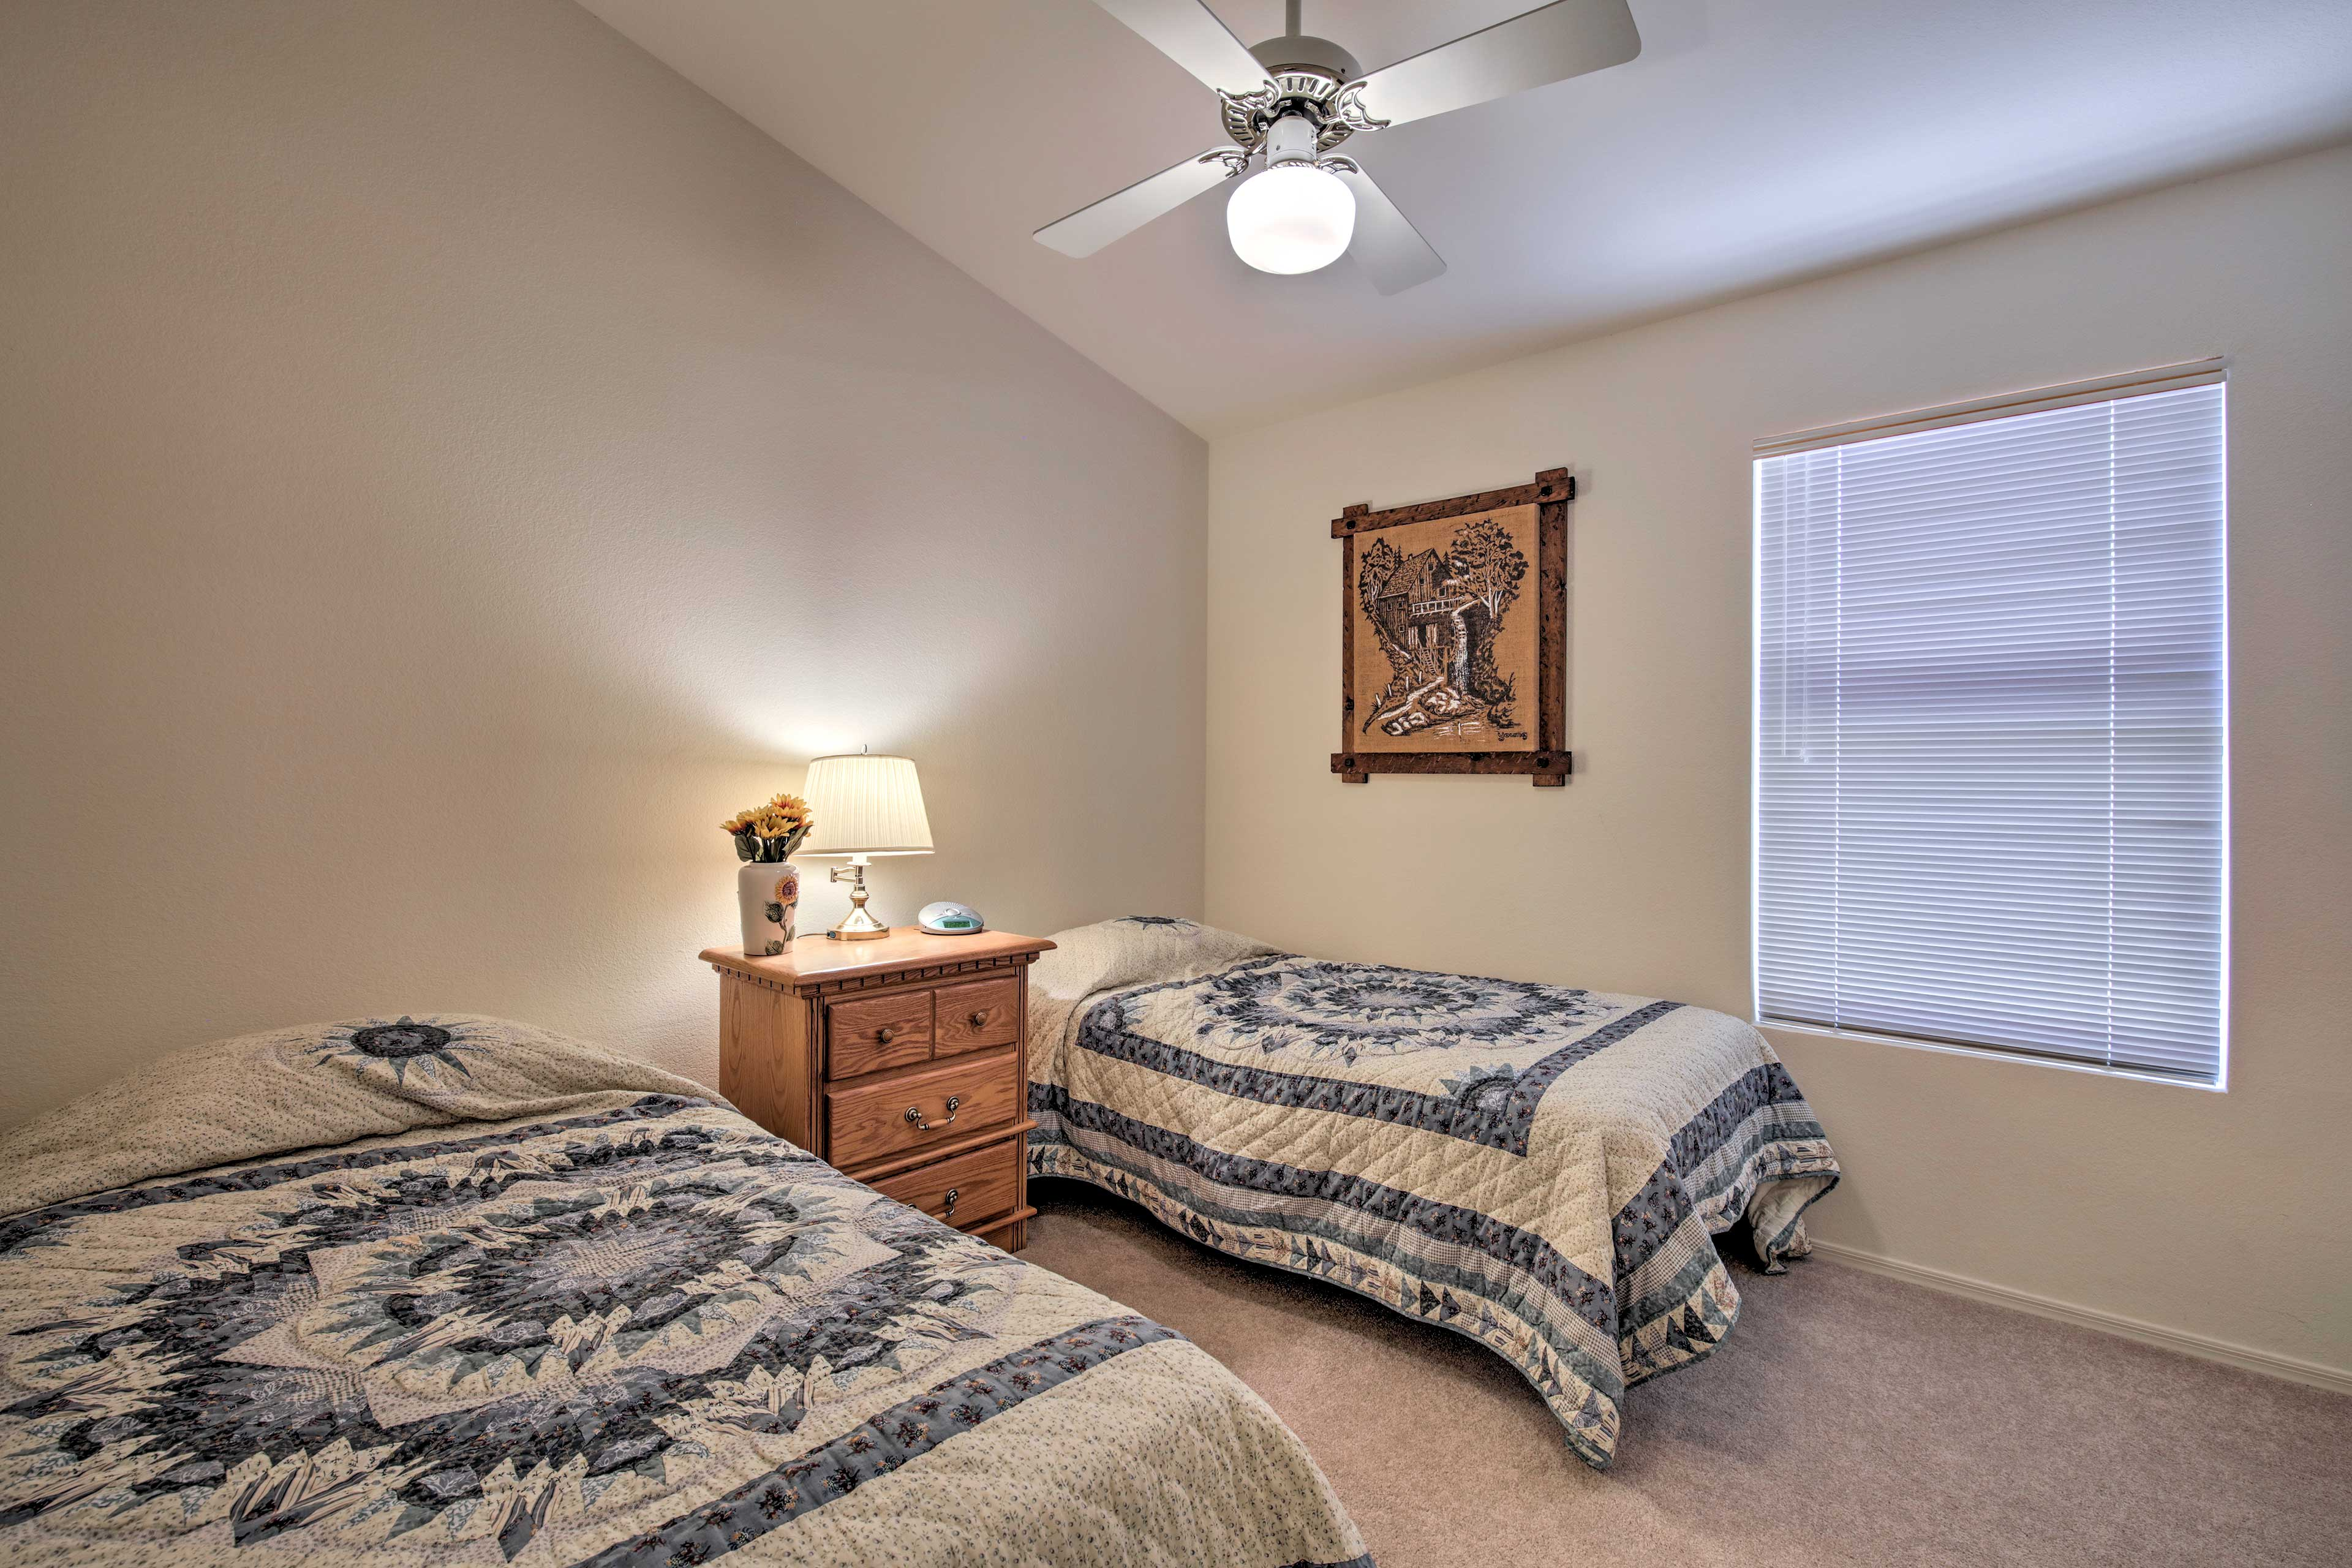 Unpack, unwind, and get rest in this bedroom with 2 twin beds.